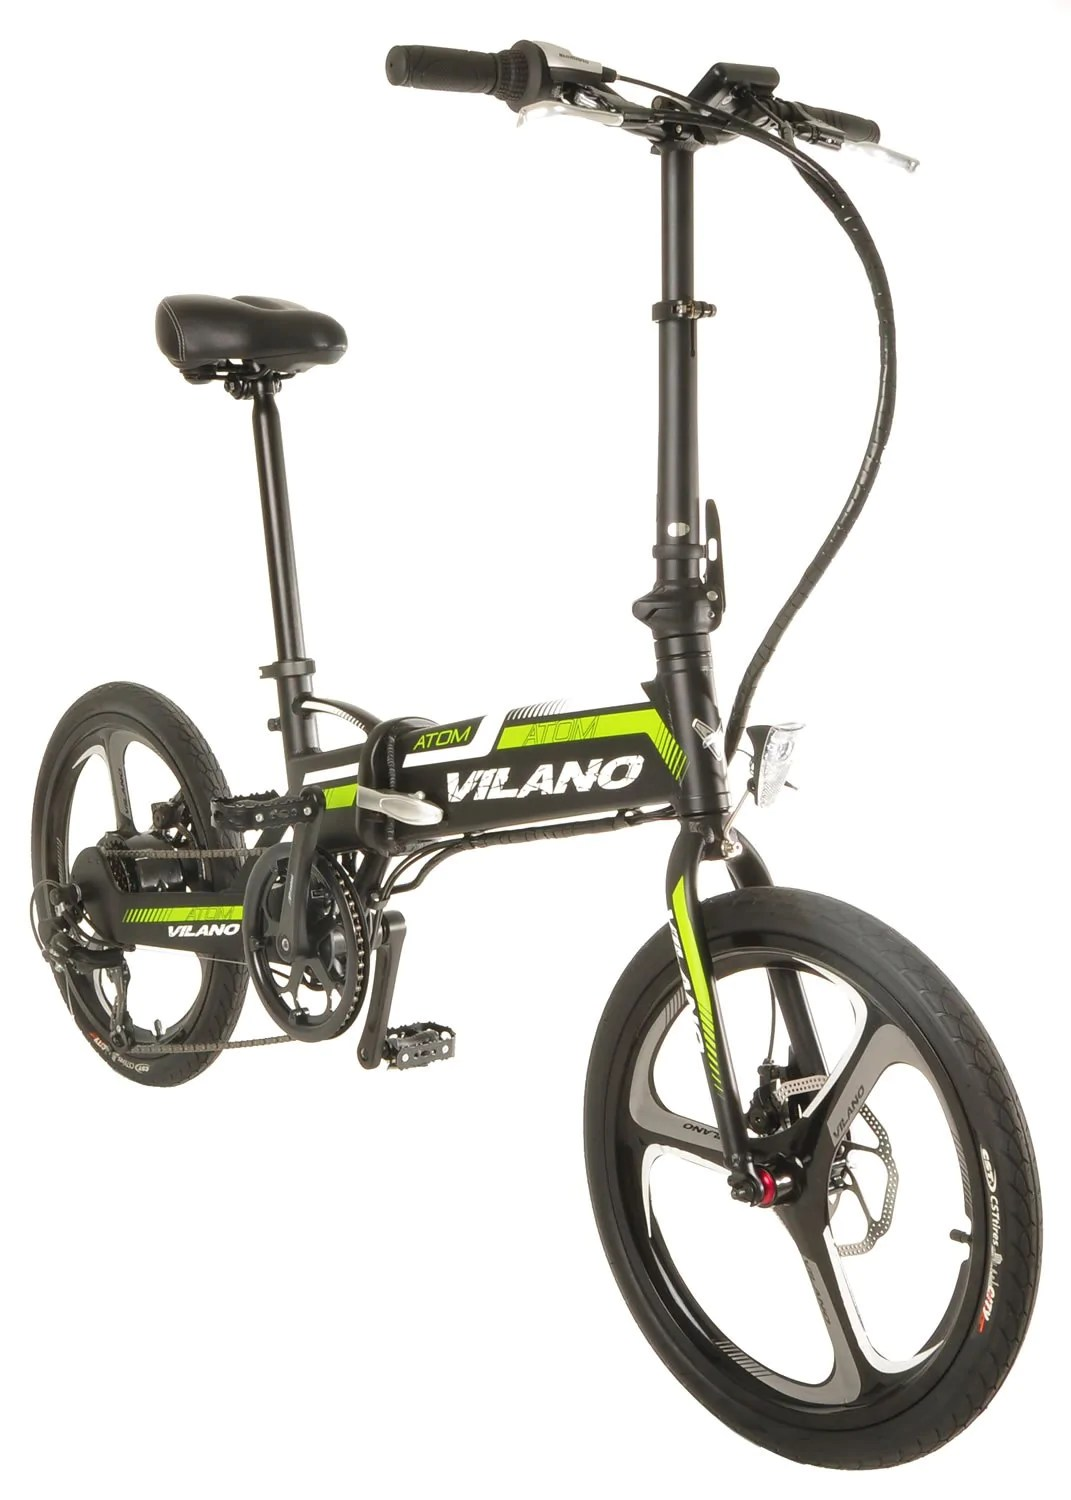 Folding Bmx Bike : folding, Vilano, Electric, Folding, Bike,, 20-Inch, Wheels, Bikes